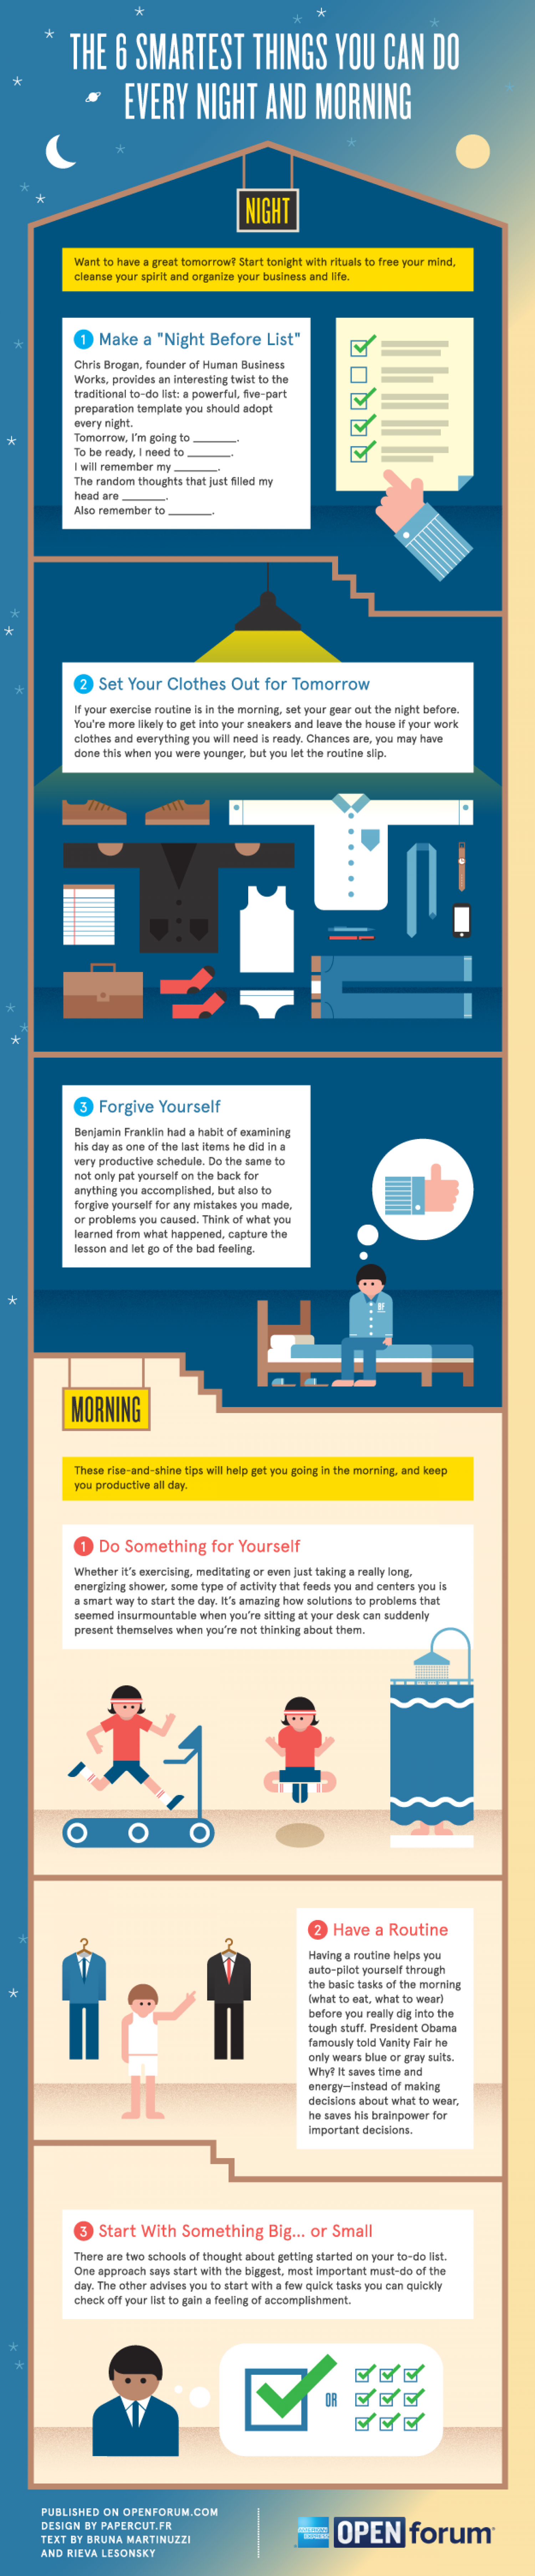 The 6 Smartest Things You Can Do Every Night and Morning Infographic